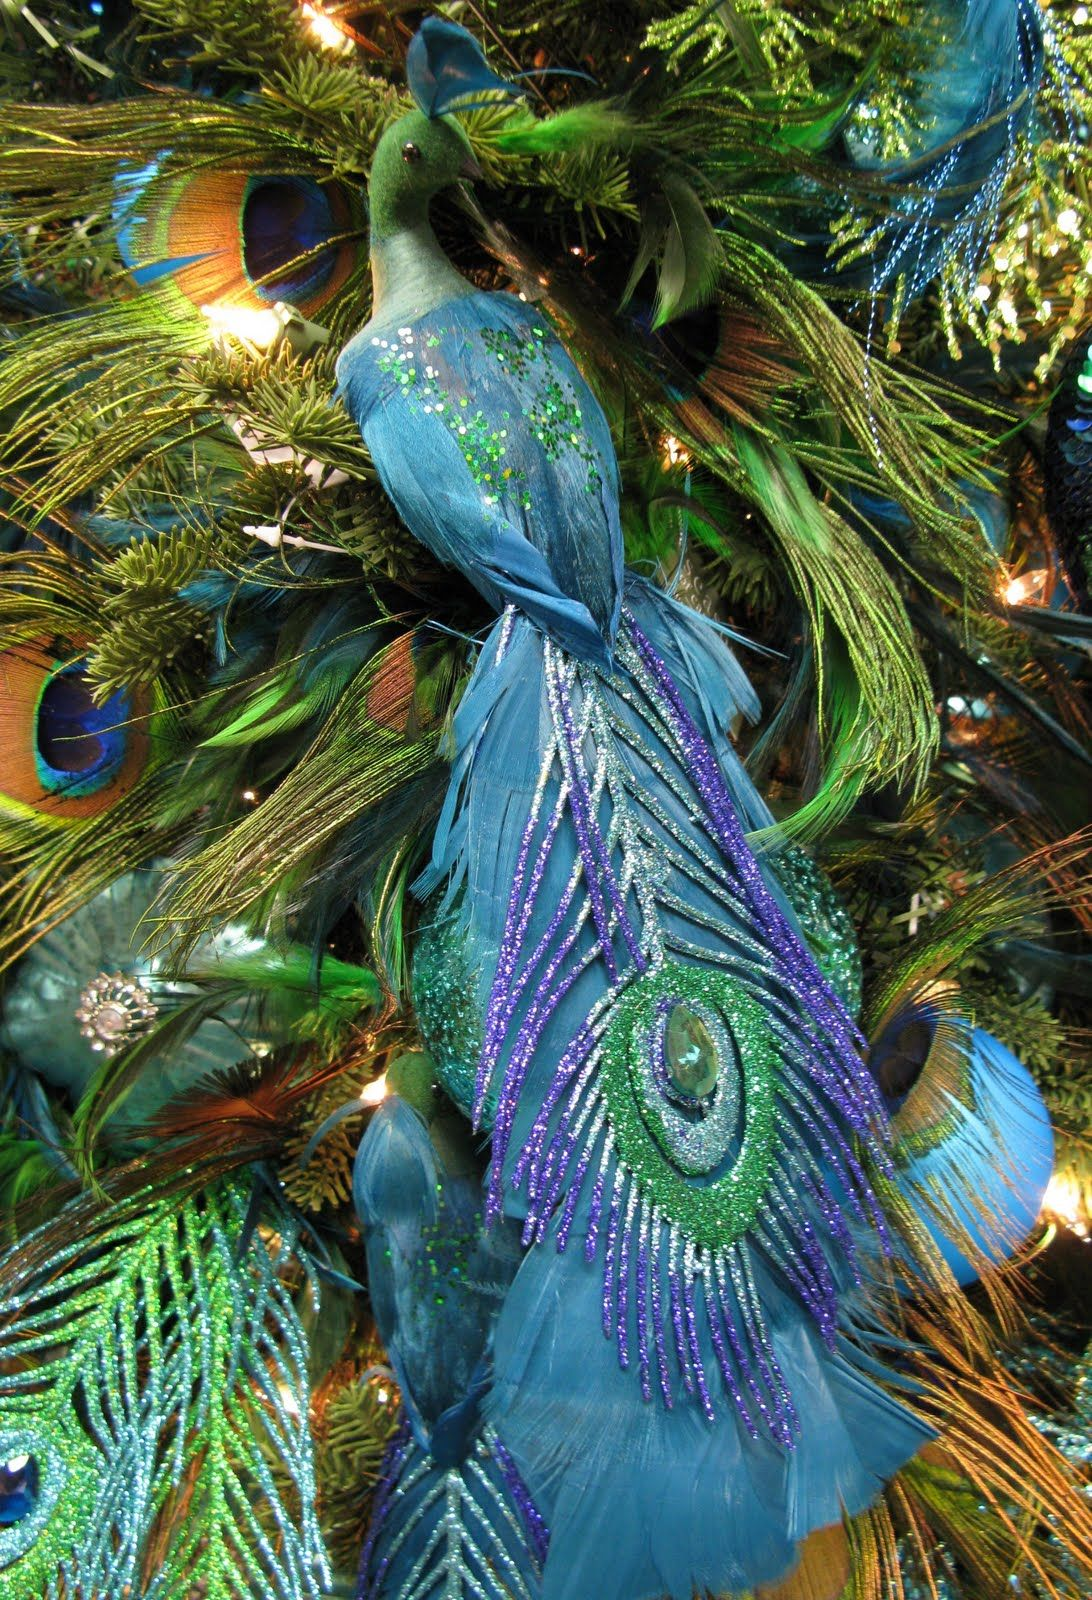 Peacock Arrangement More Peacock Decorations Have Arrived Sequined Peacocks Glittered Pavao Pavao Misterioso Decoracao De Natal